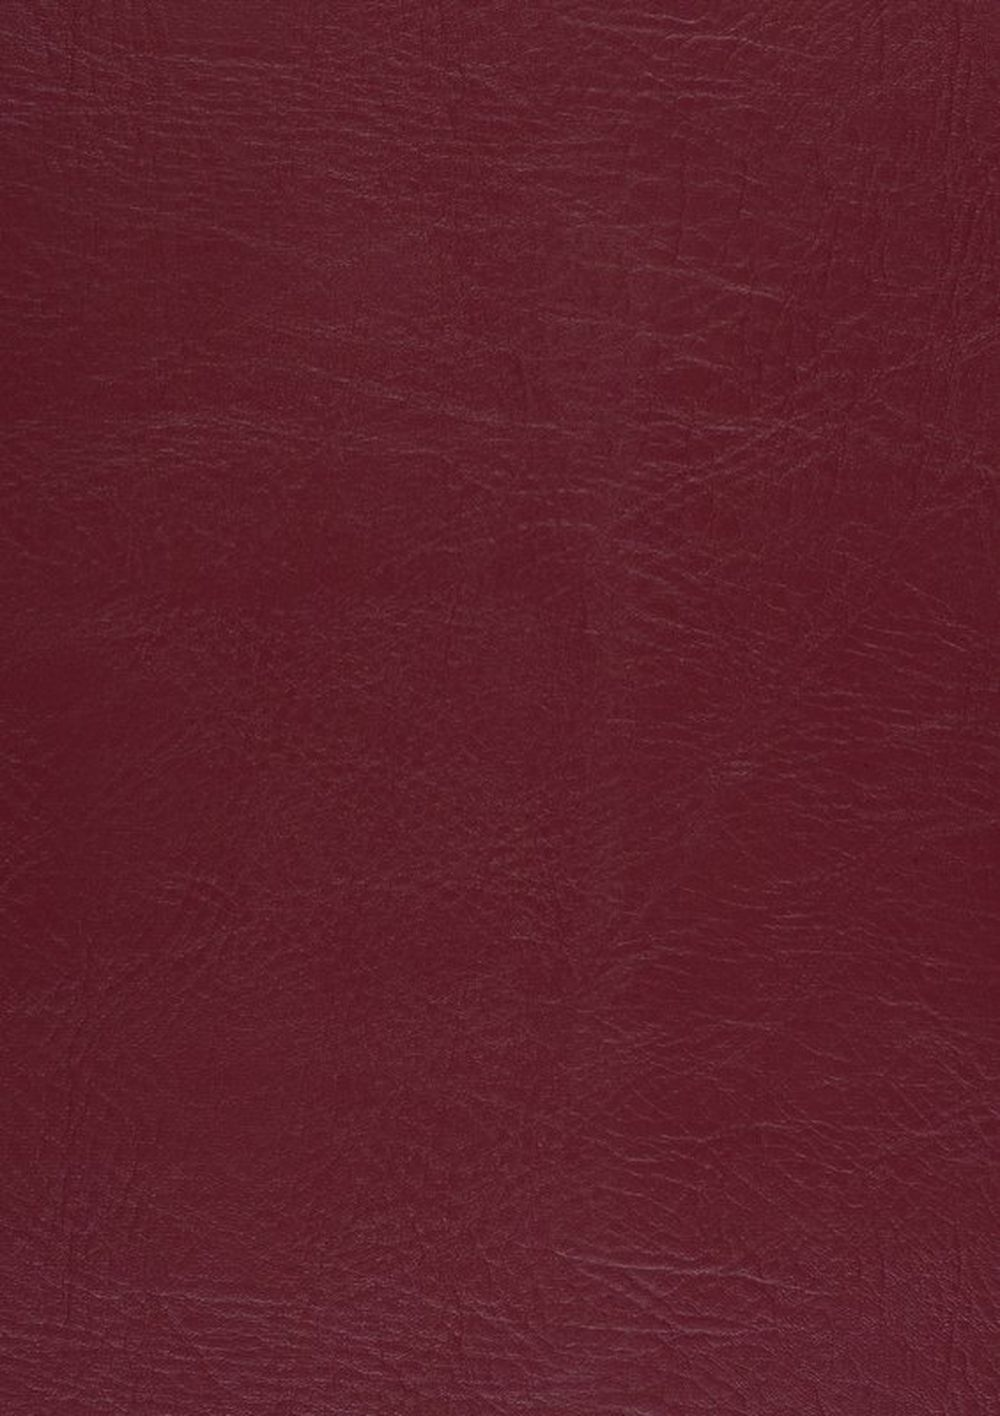 Photo of the fabric Durable FR-One Garnet swatch by FR-One. Use for Upholstery Medium Duty, Accessory. Style of Plain, Texture